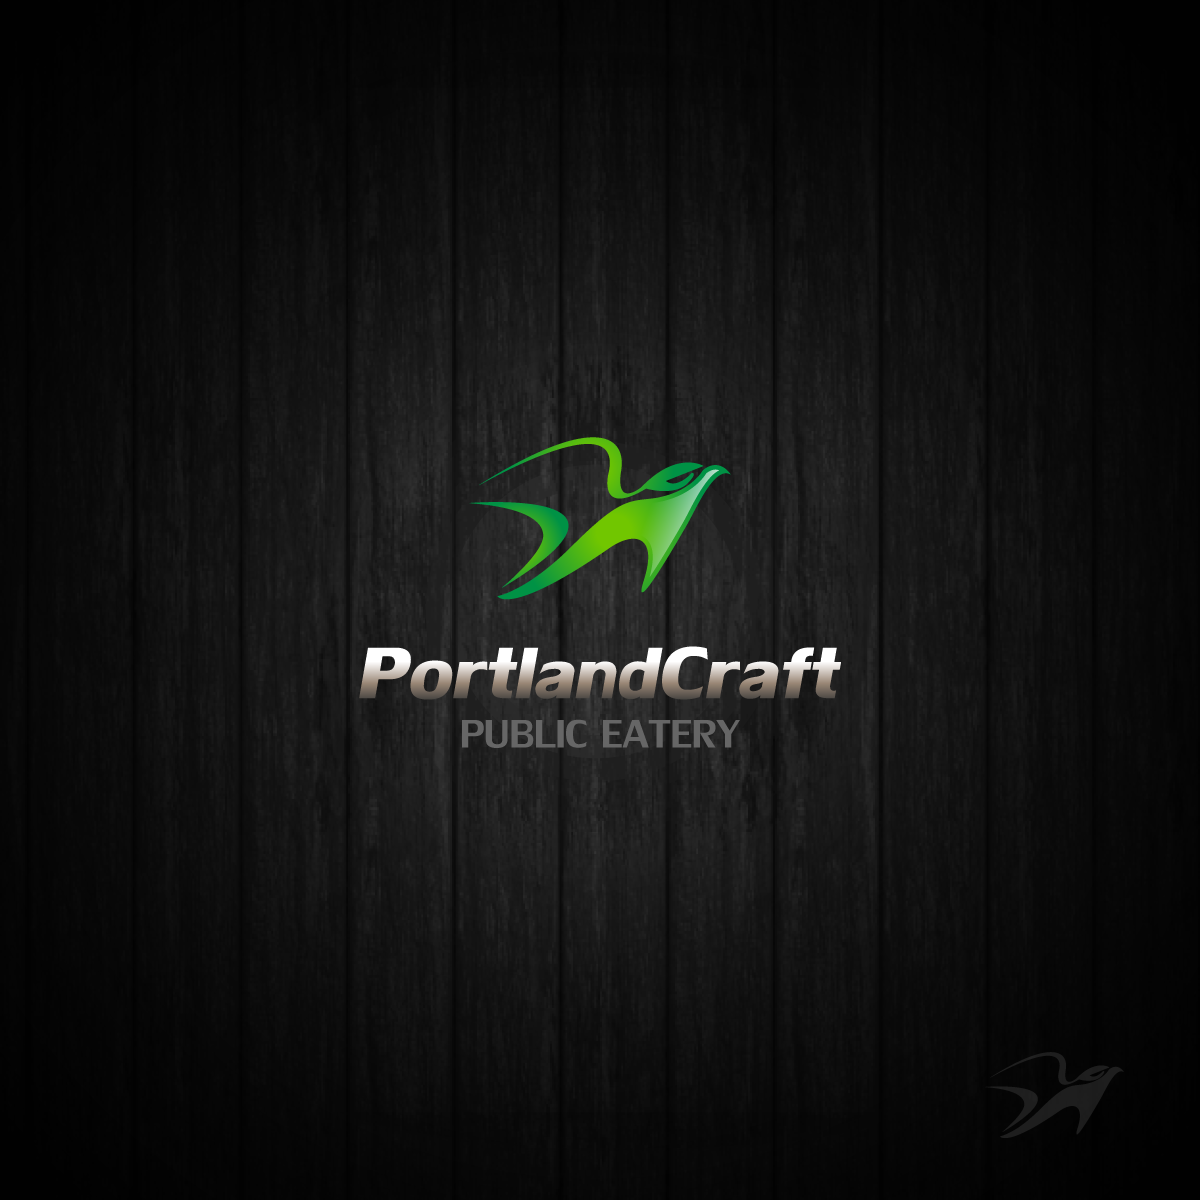 Logo Design by zesthar - Entry No. 18 in the Logo Design Contest New Logo Design for Portland Craft Public Eatery.